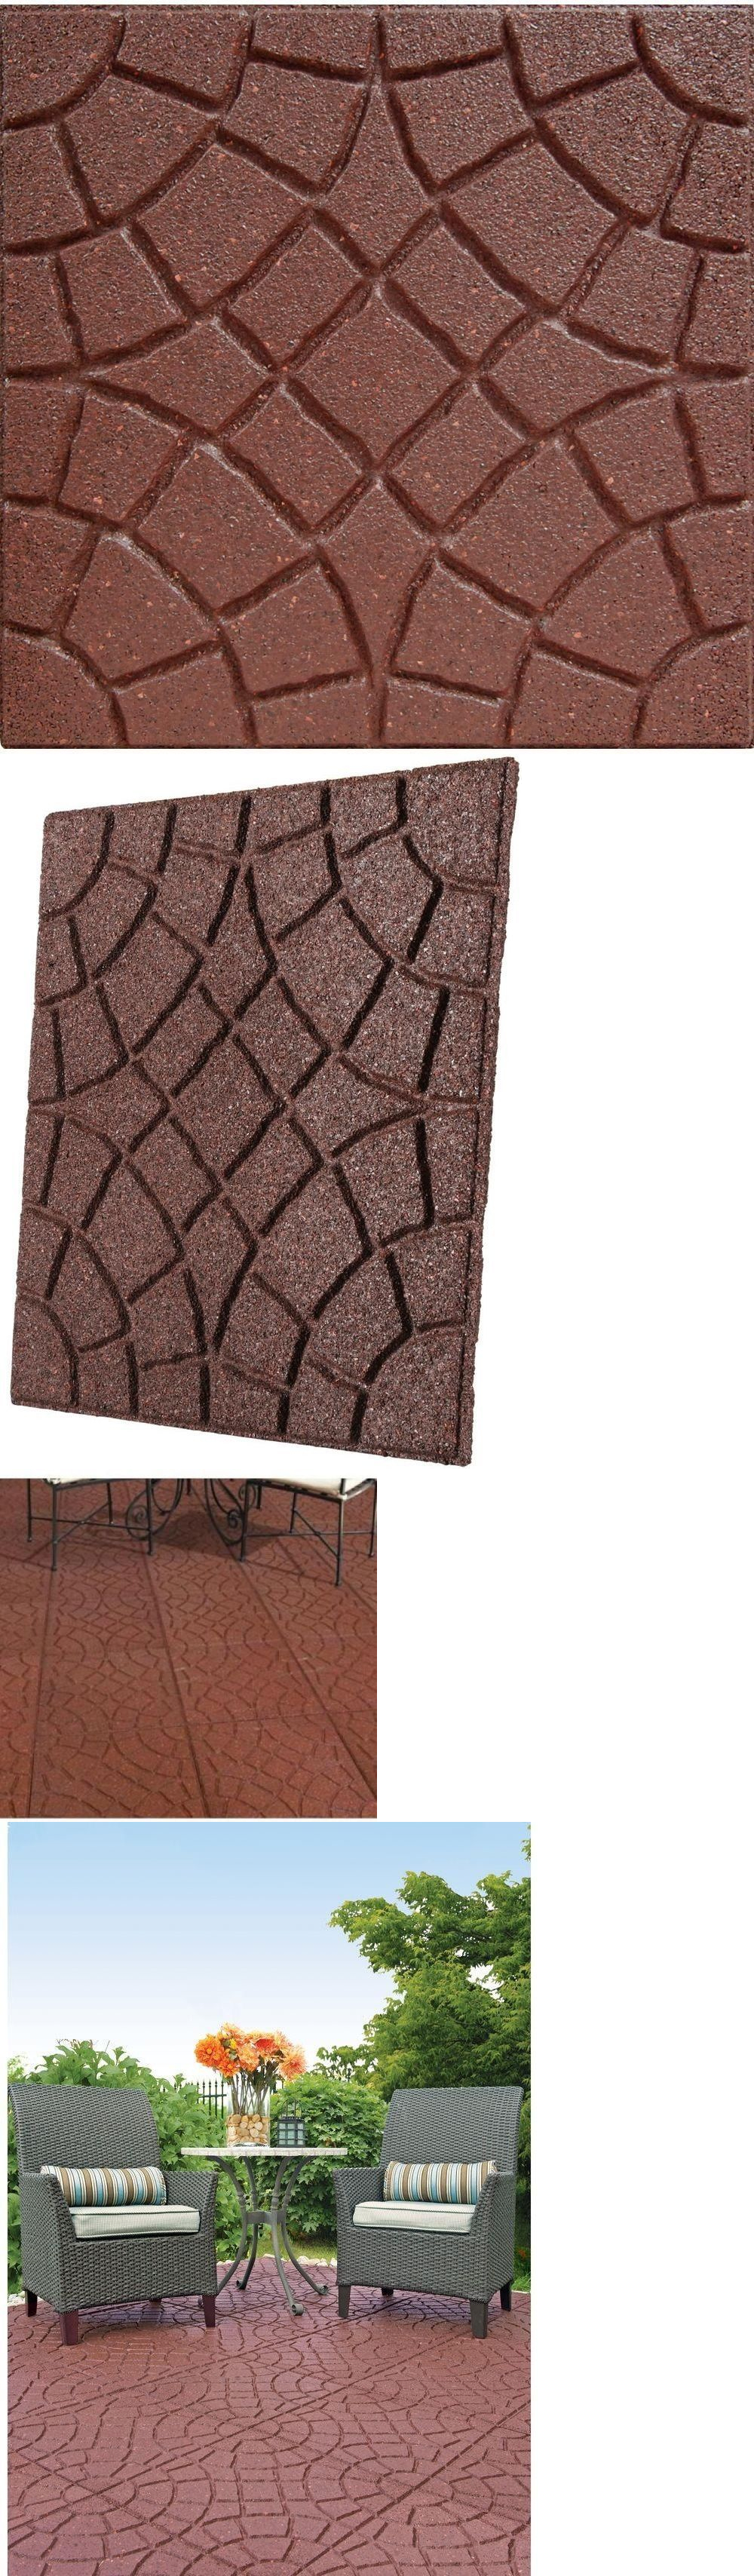 Pavers and Step Stones 4 Pack 18 Square Decorative Rubber